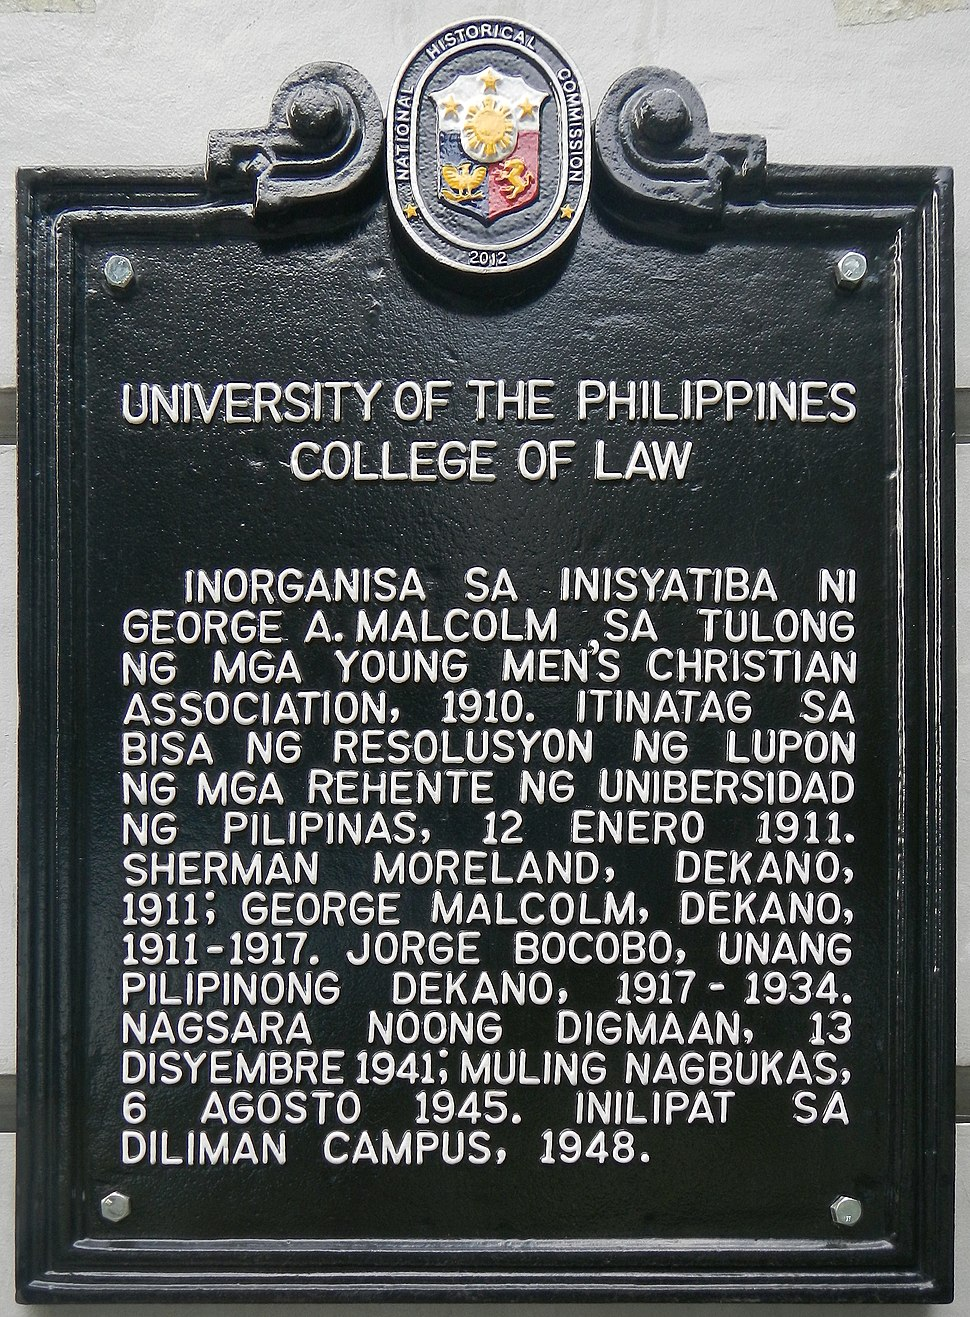 University of the Philippines College of Law historical marker